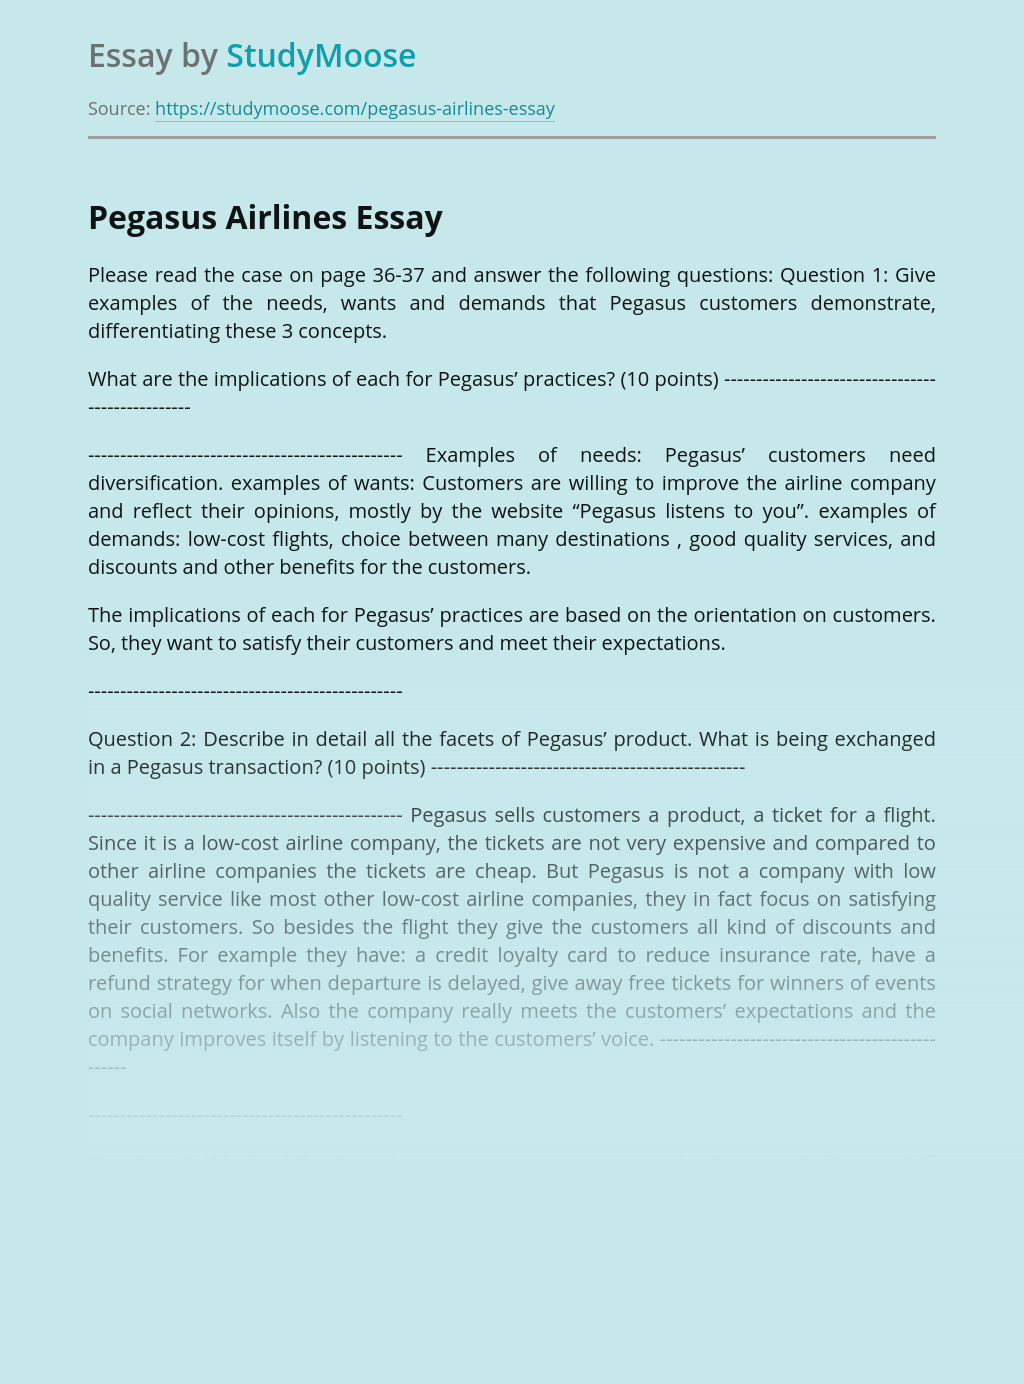 Overview of Pegasus Airlines Company